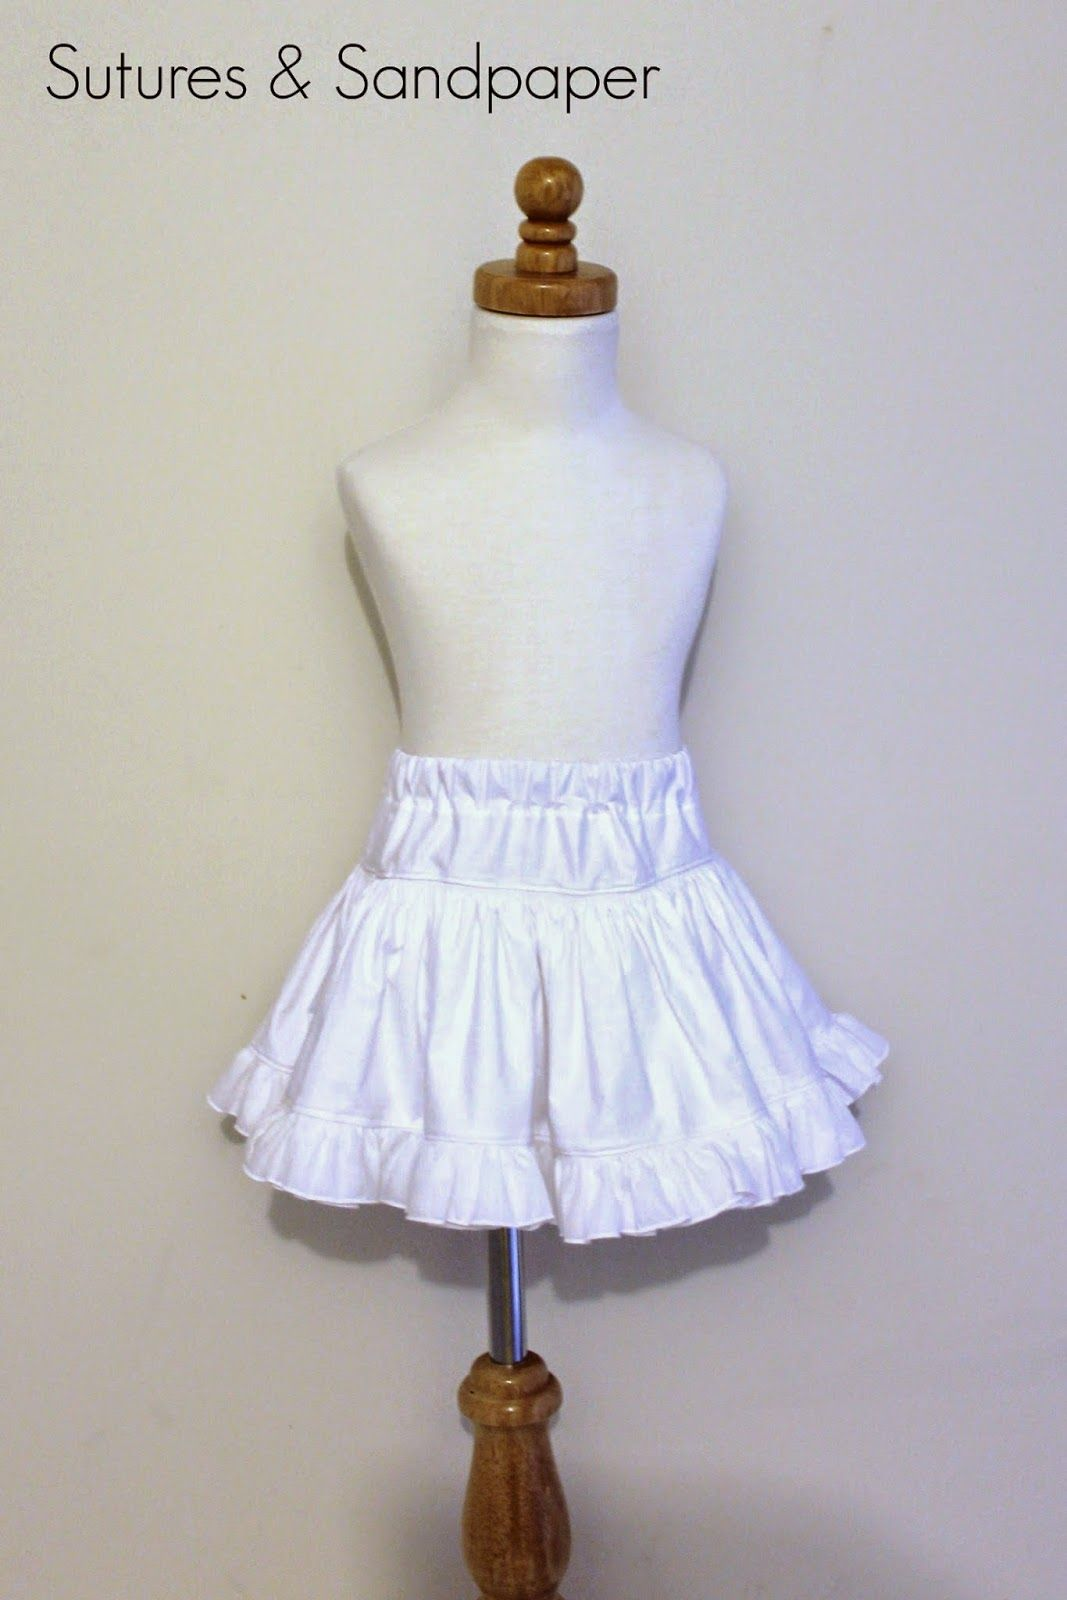 This is a super quick post to share an idea I had. I have been wanting a pettiskirt for E to wear when taking photos of her dresses. T...